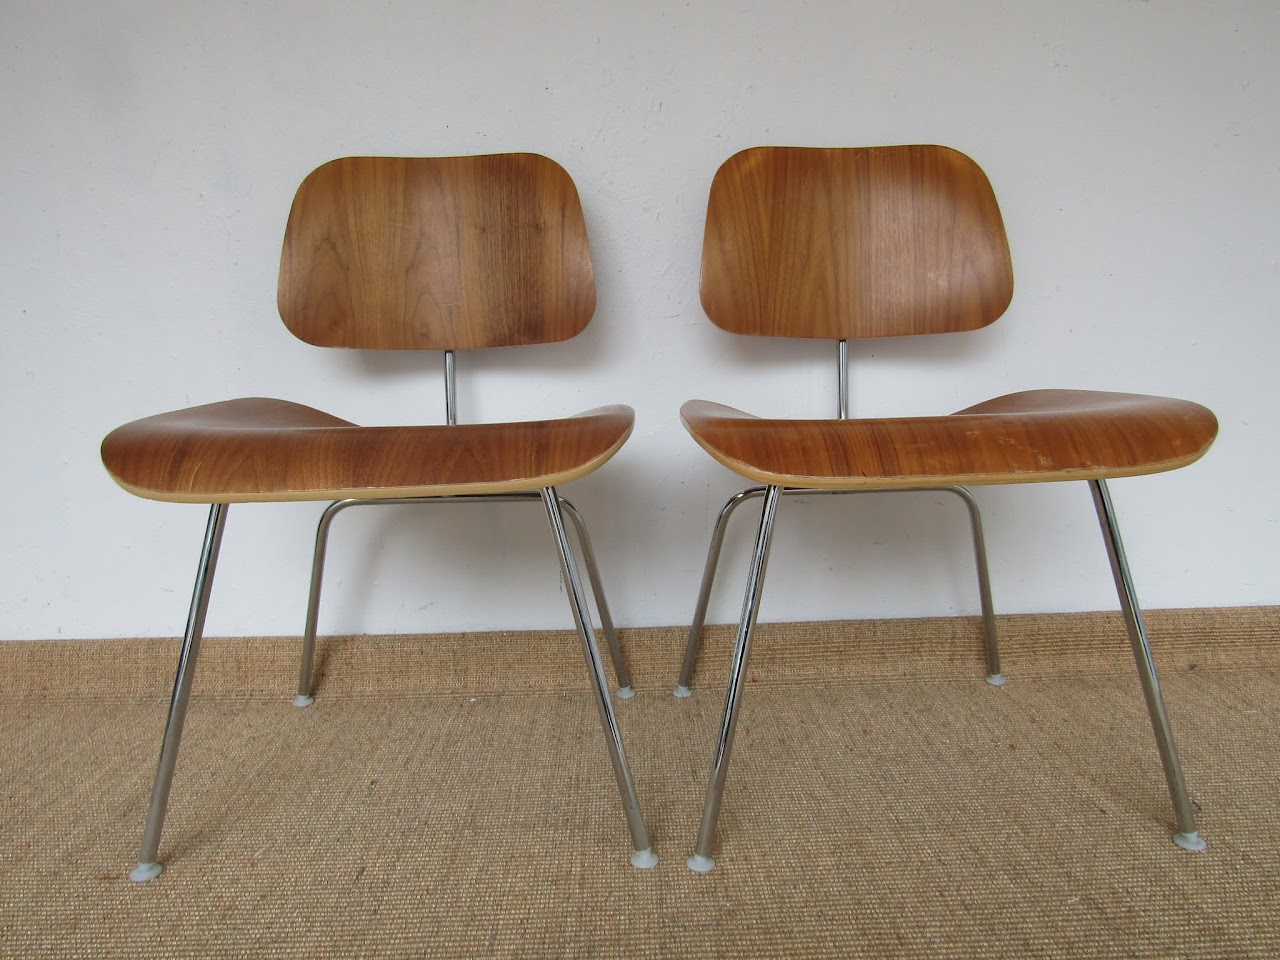 Eames Molded Plywood Chair Pair (3)